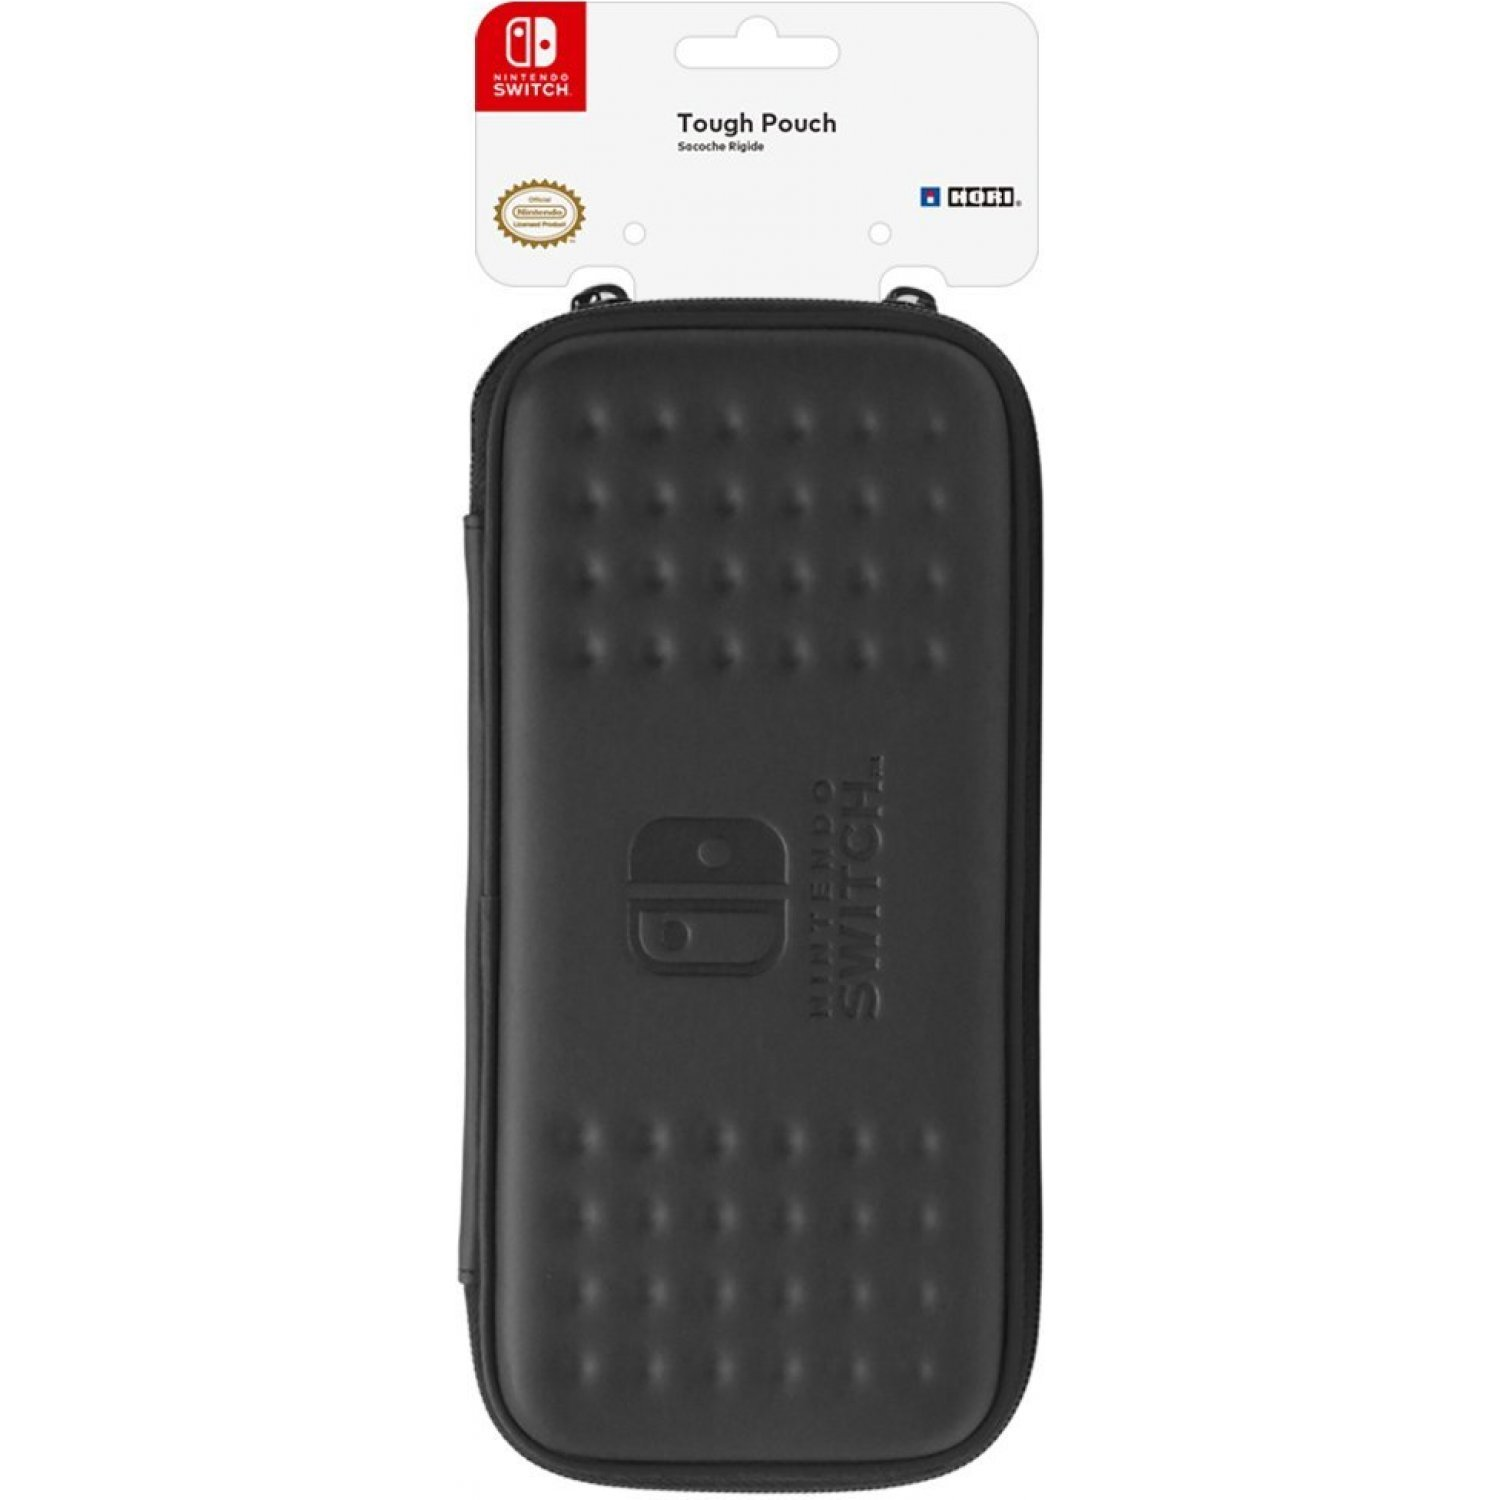 tough-pouch-for-nintendo-switch-black-508665.1.jpg